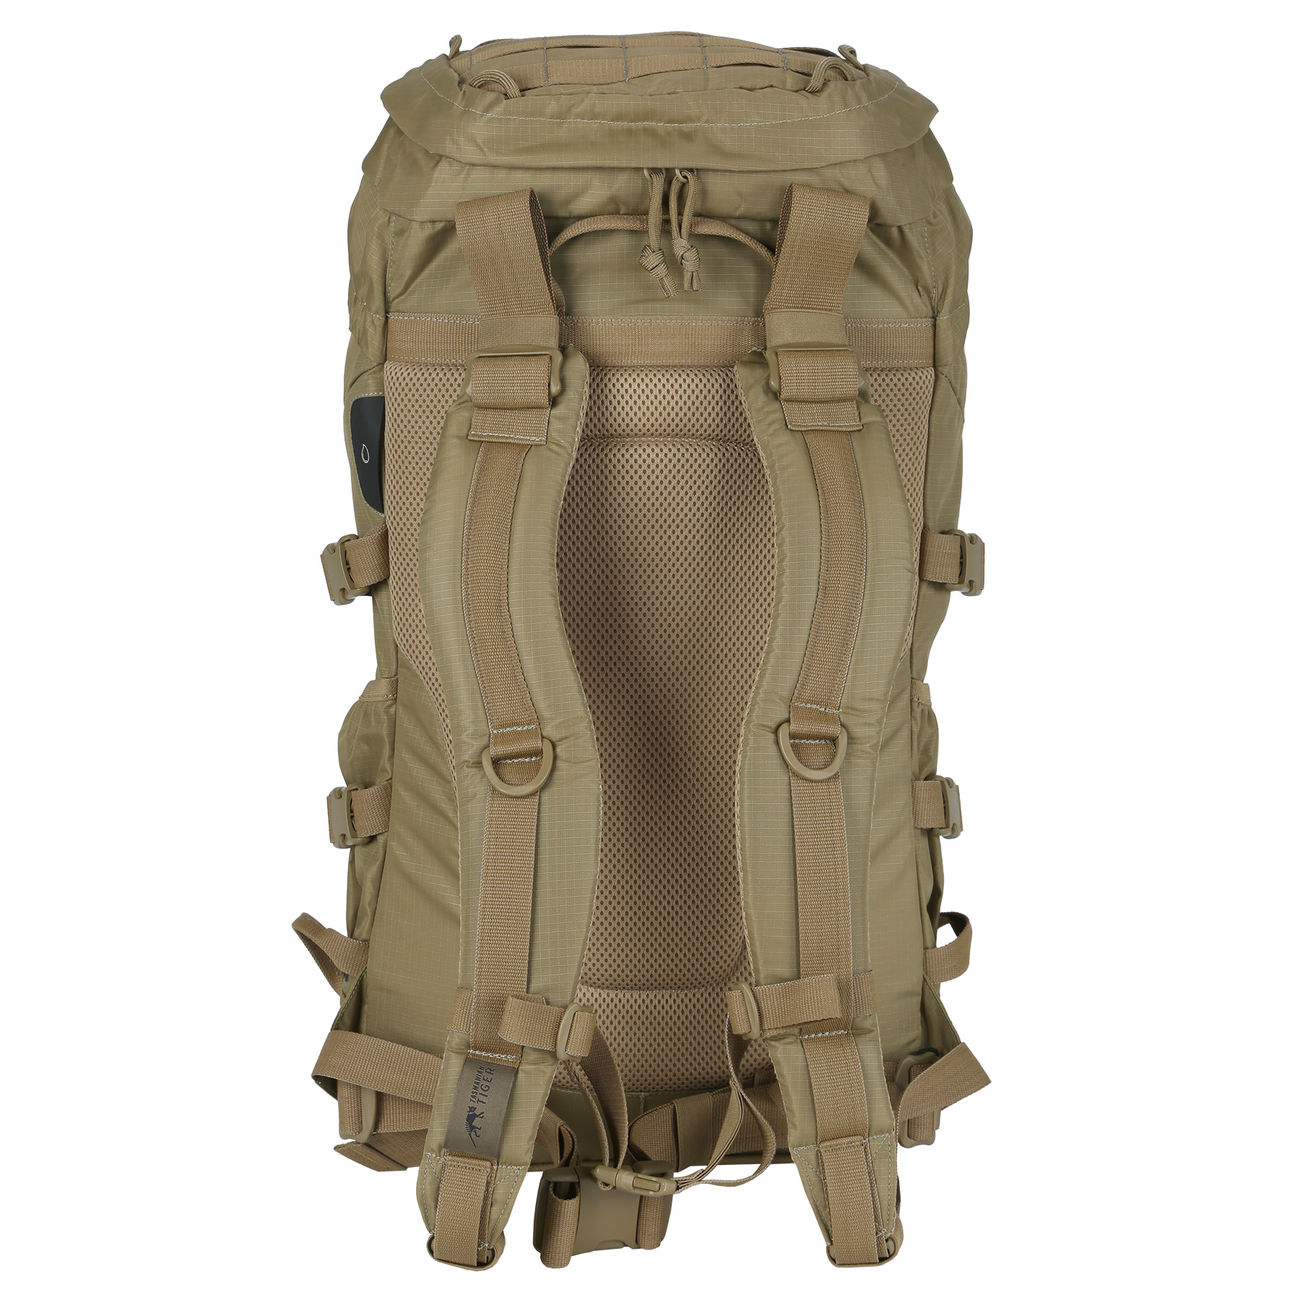 TT Rucksack Trooper Light Pack 35 khaki 5